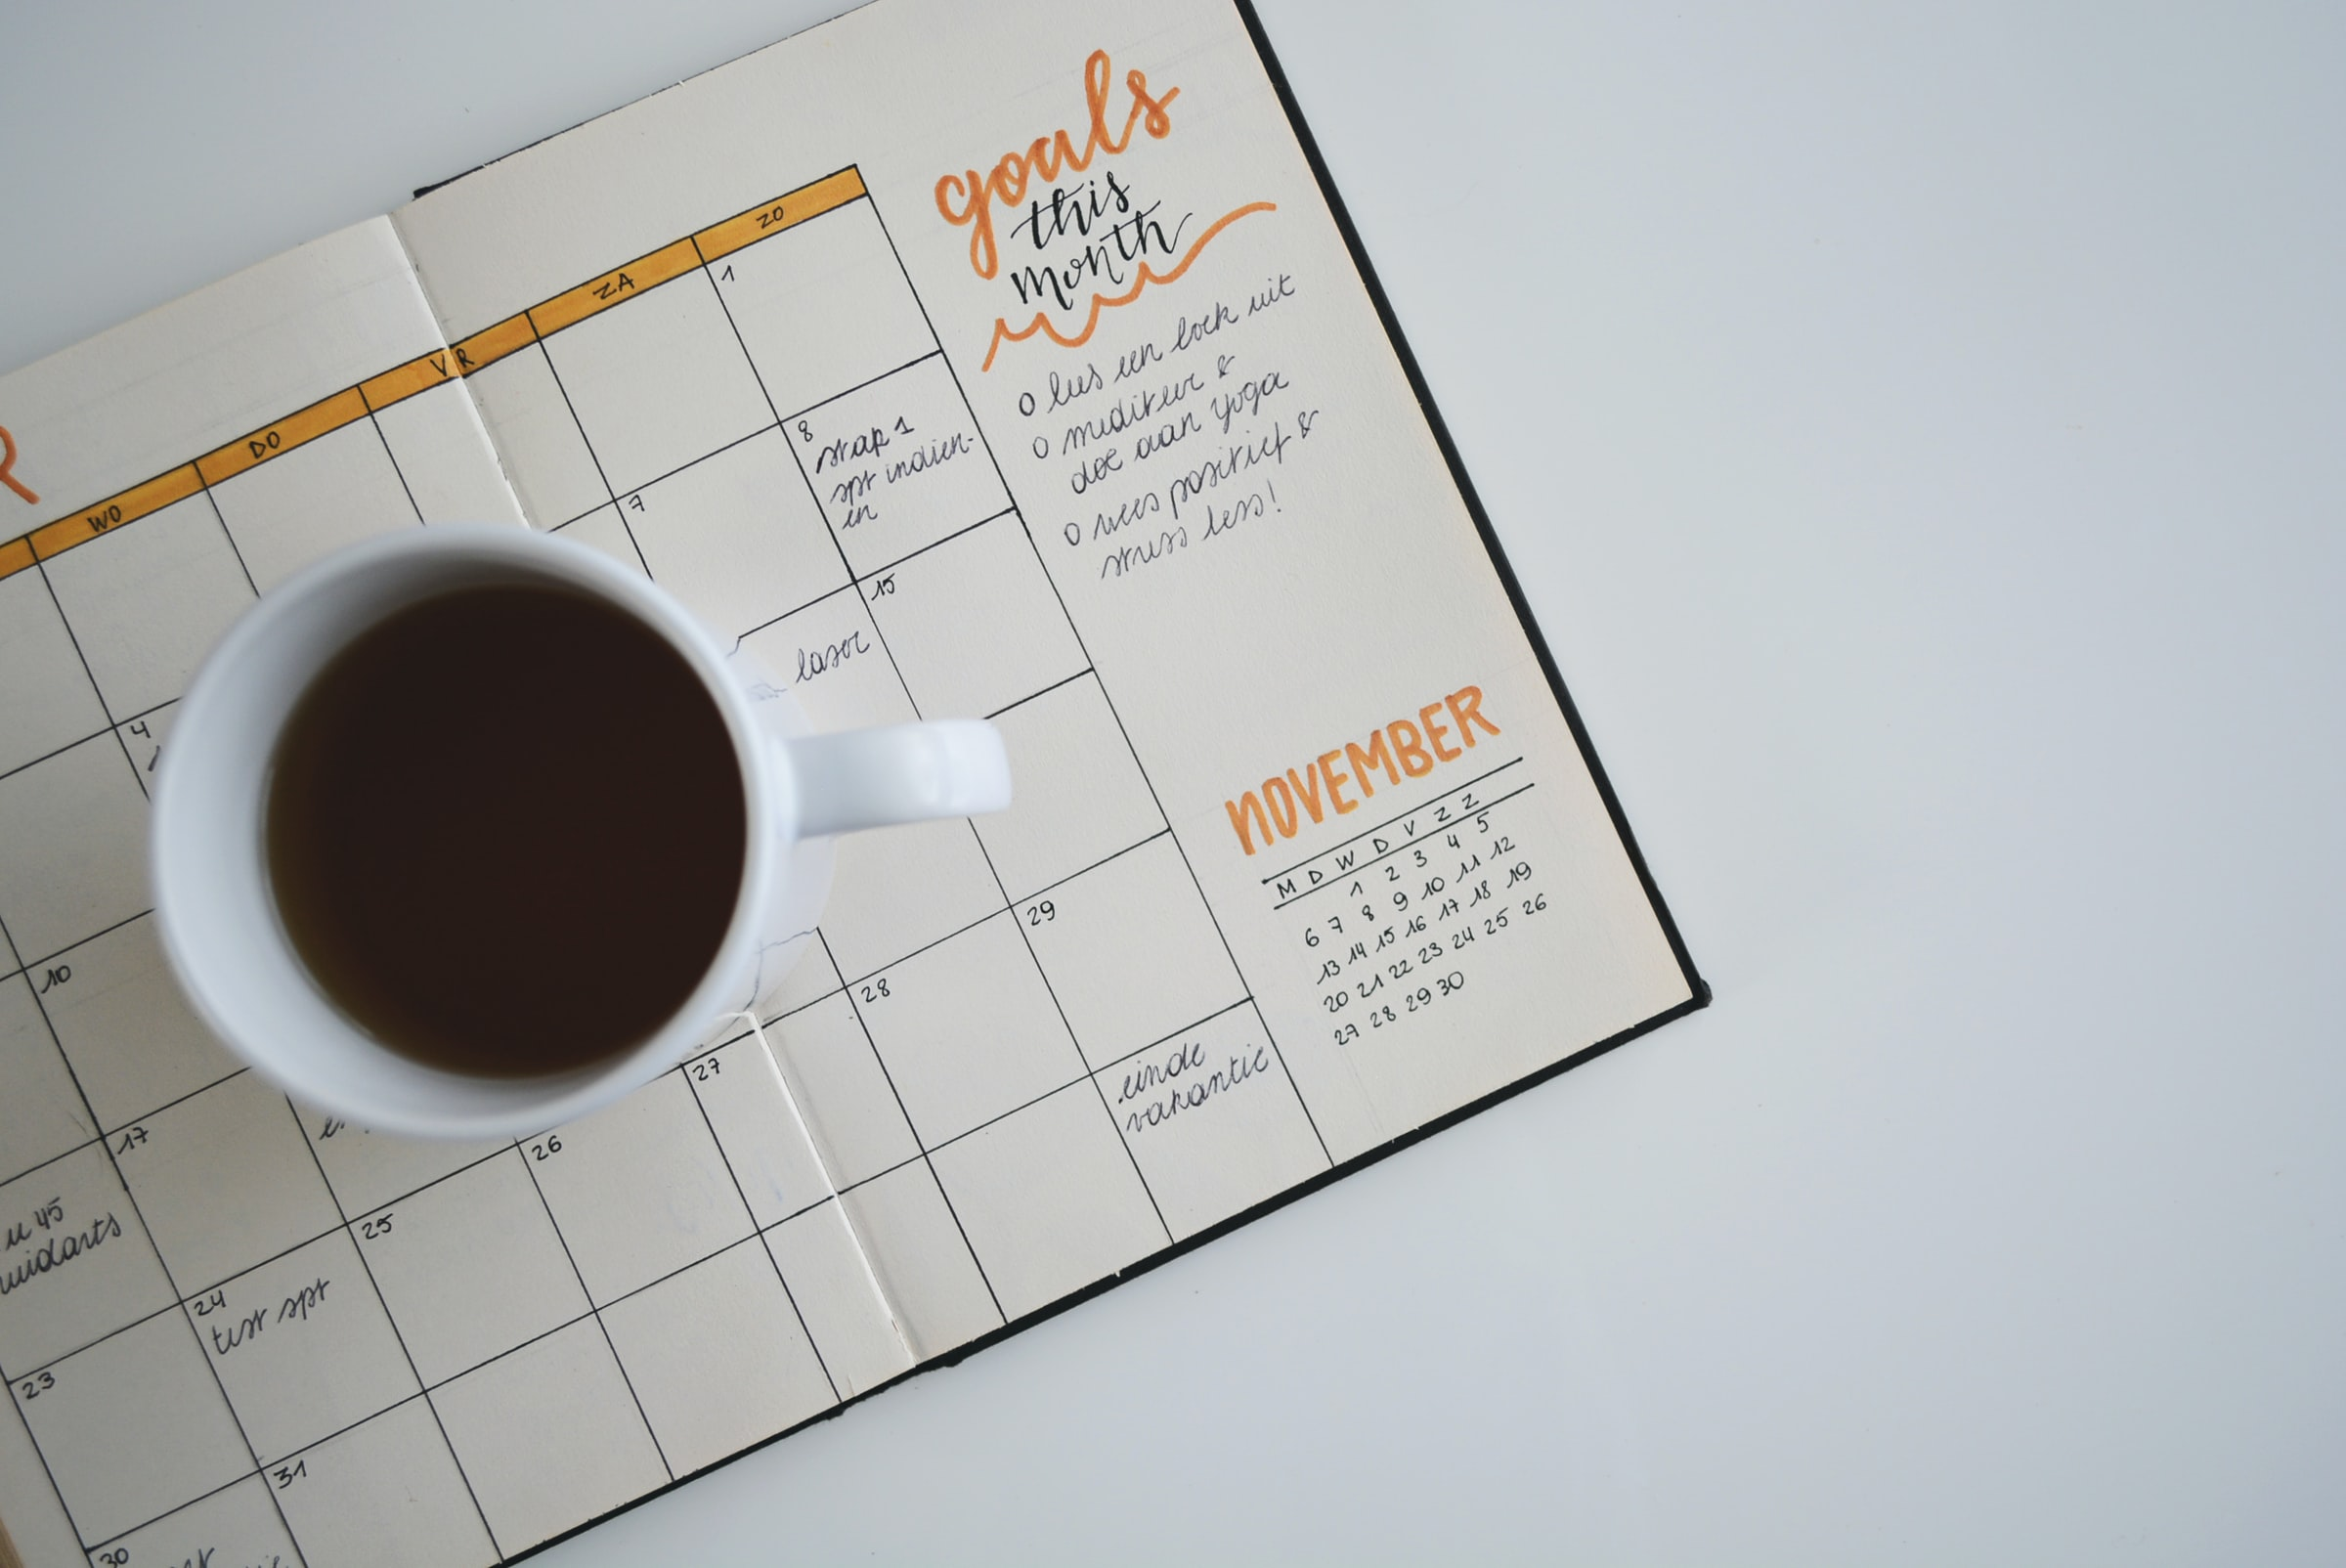 Notebook for scheduling